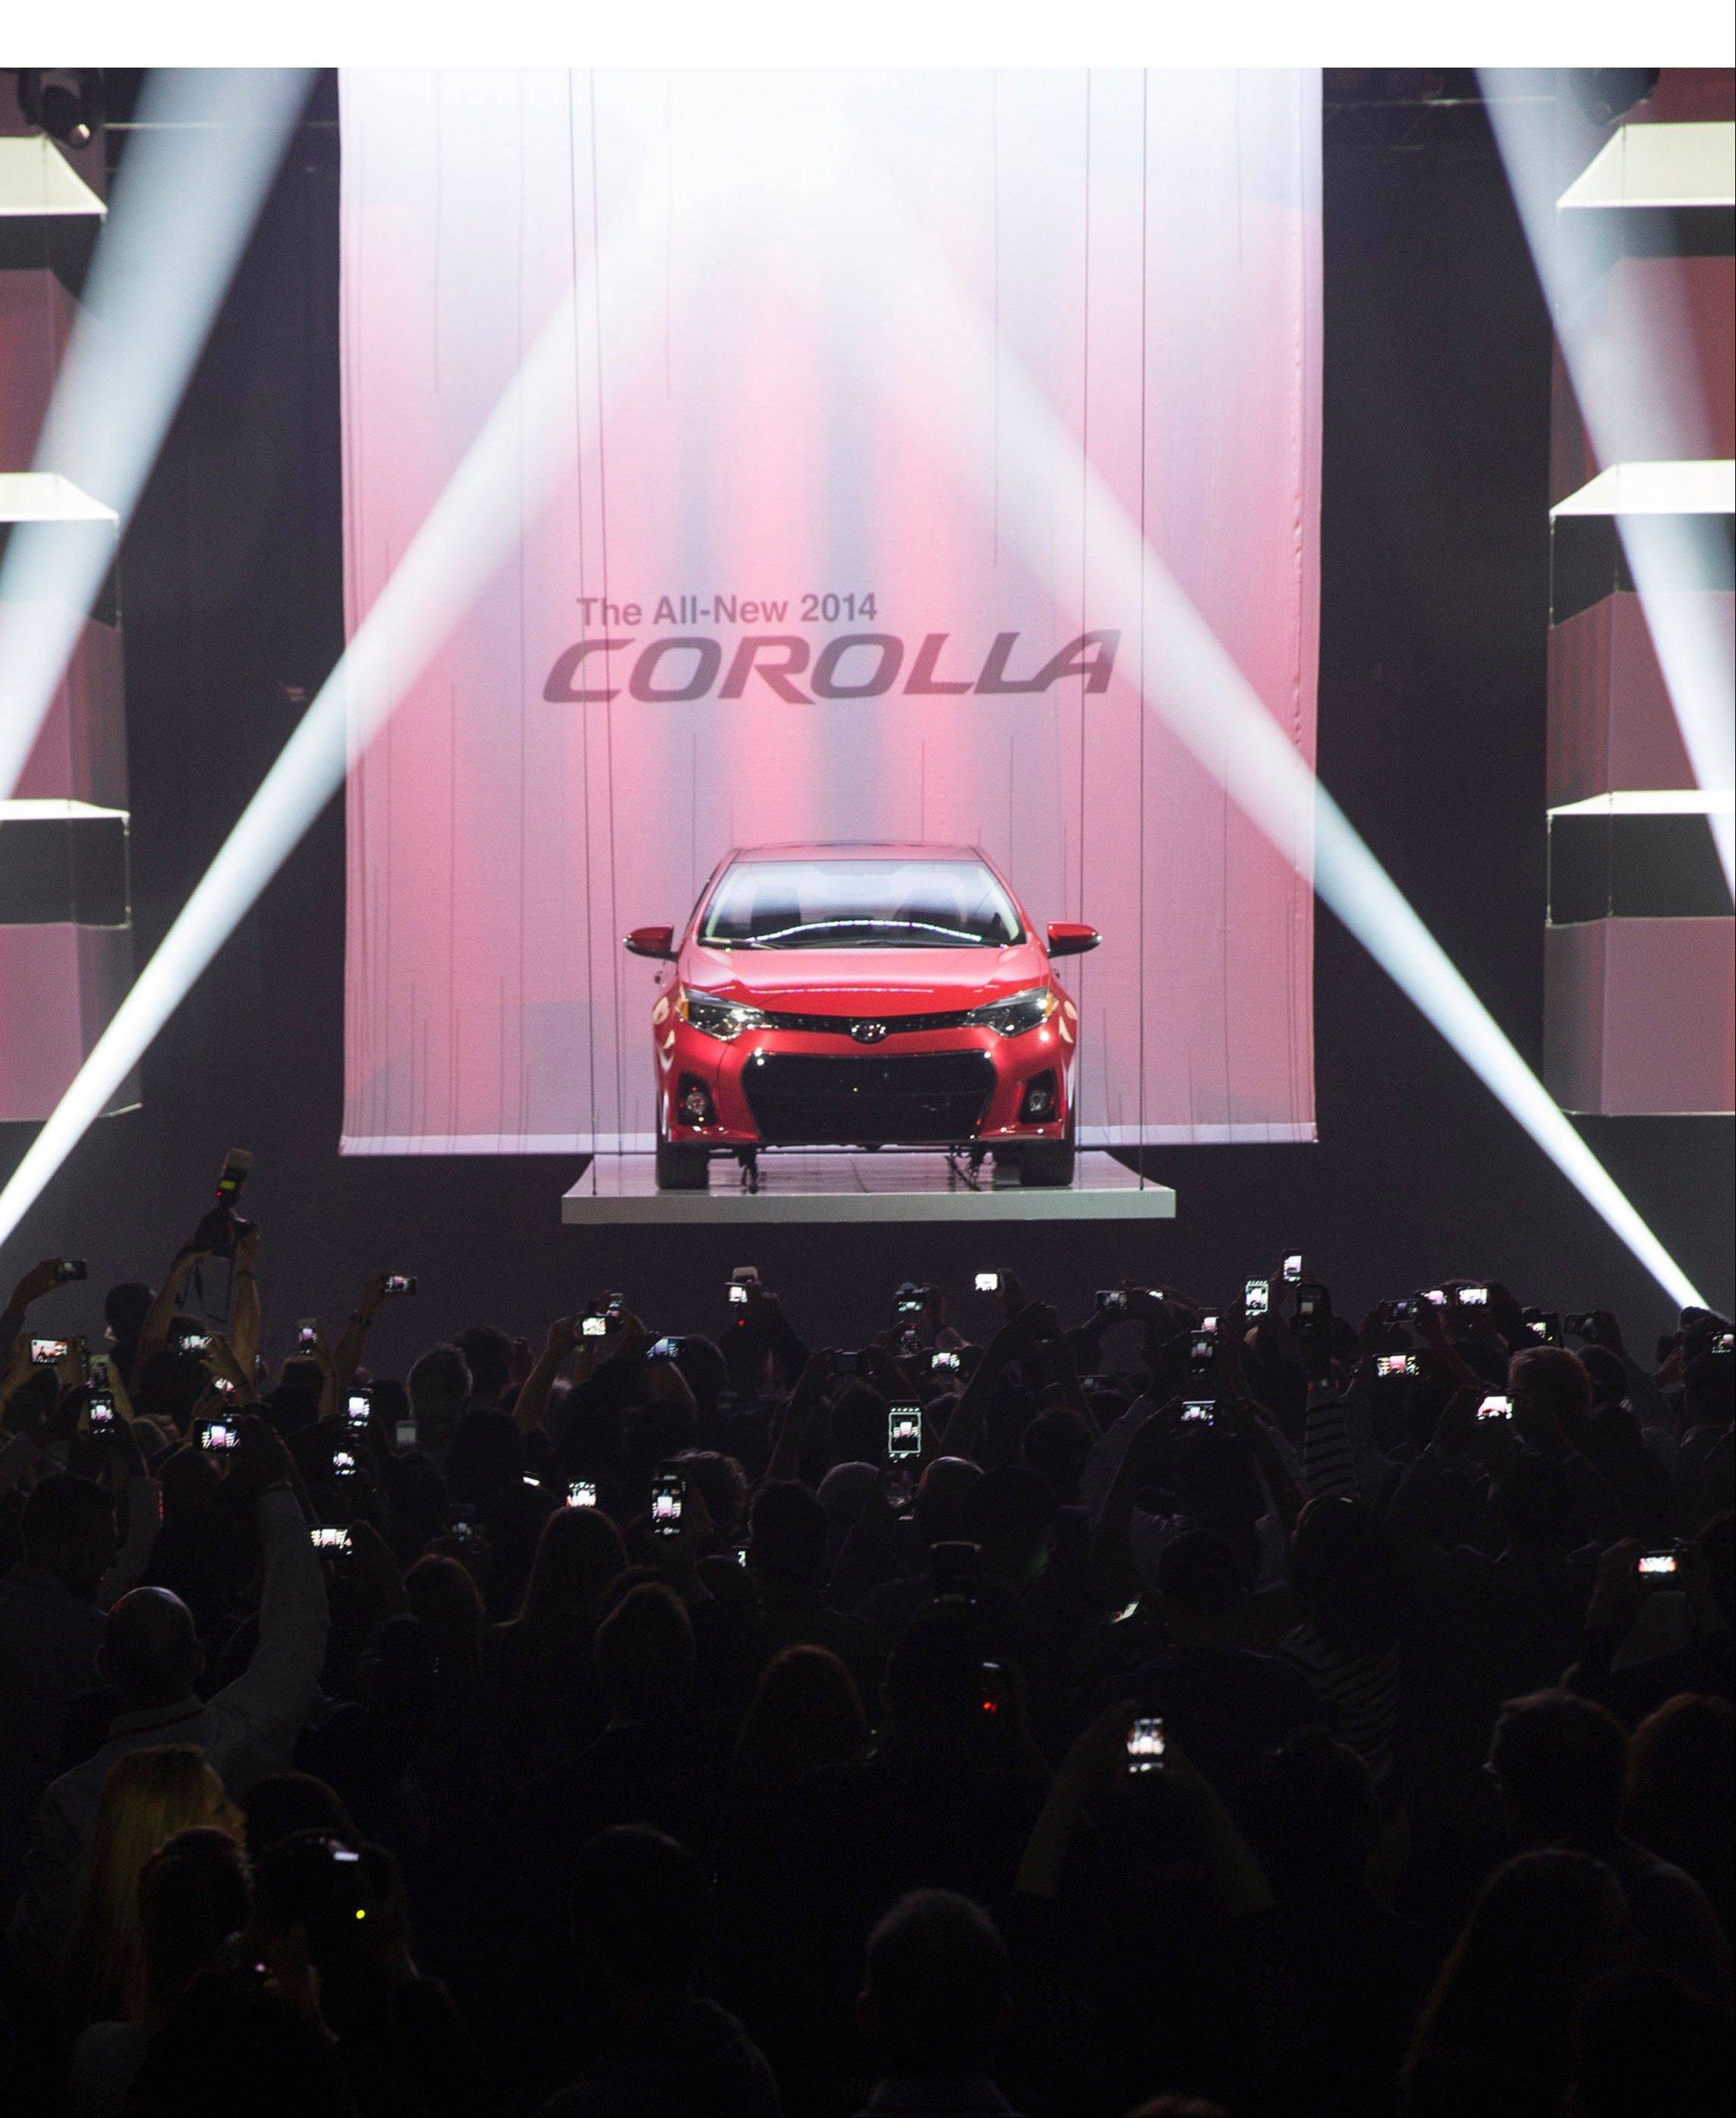 The all-new 2014 Toyota Corolla was revealed Thursday night at a packed celebration inside Barker Hangar in Santa Monica, Calif.